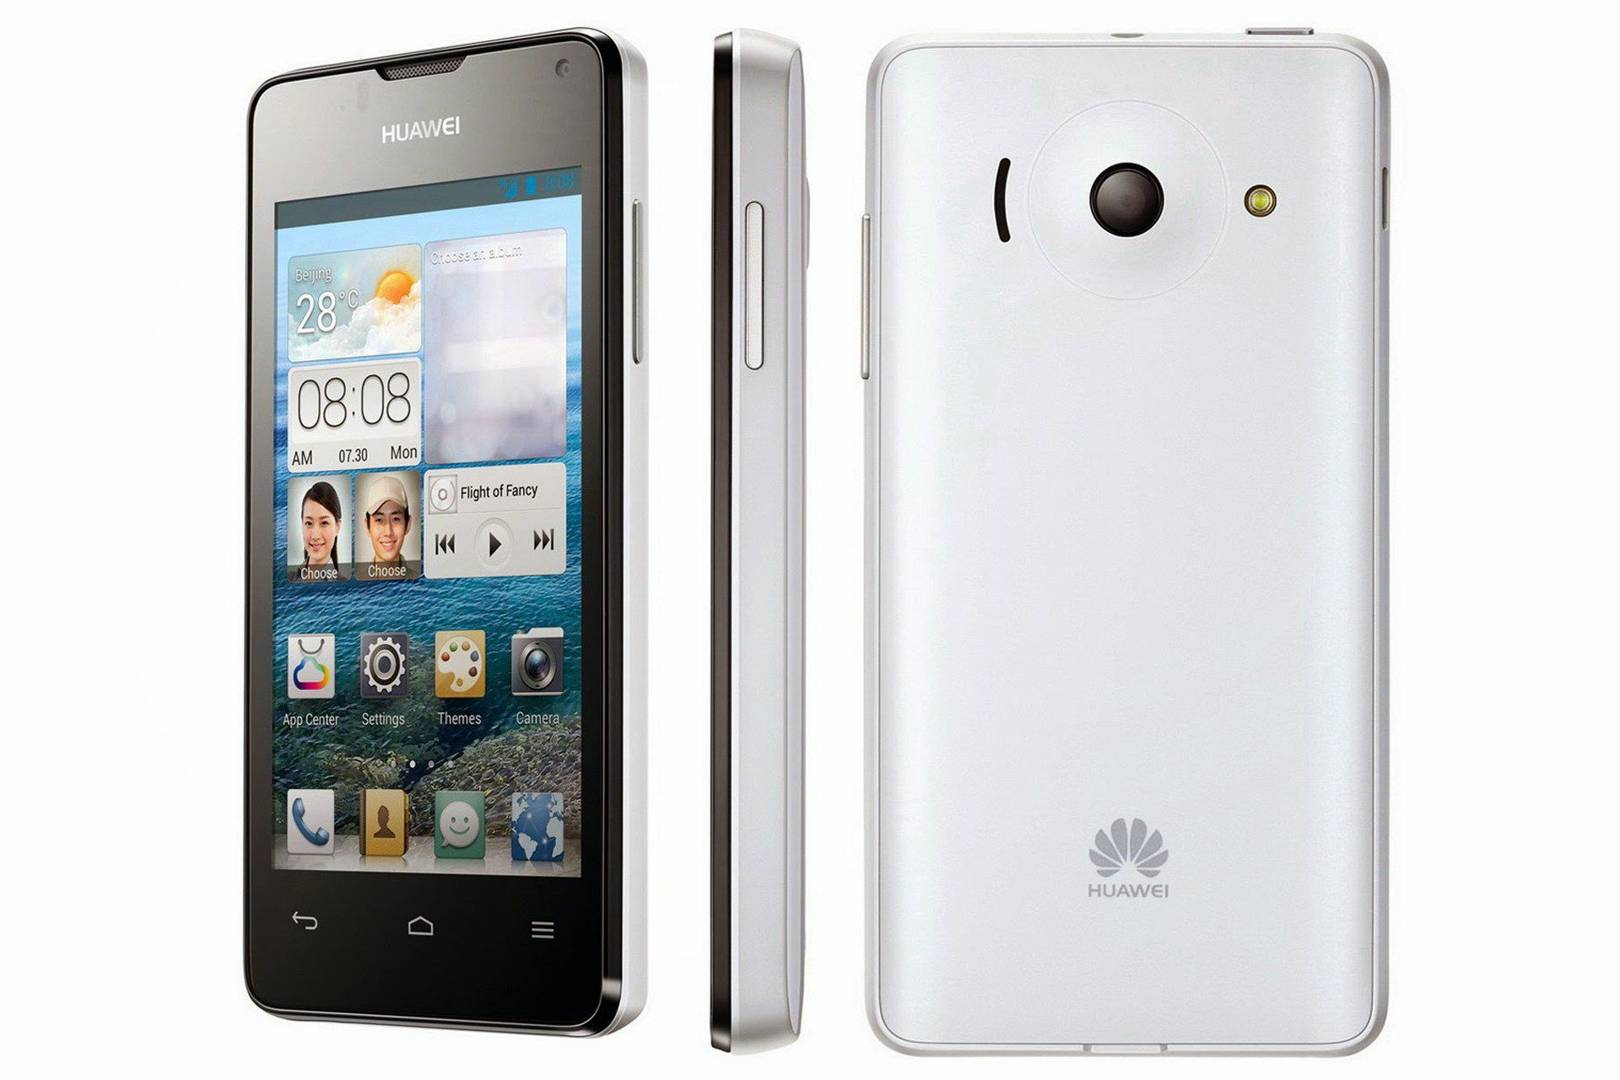 Huawei Ascend Y530 review - specs, comparison and best price